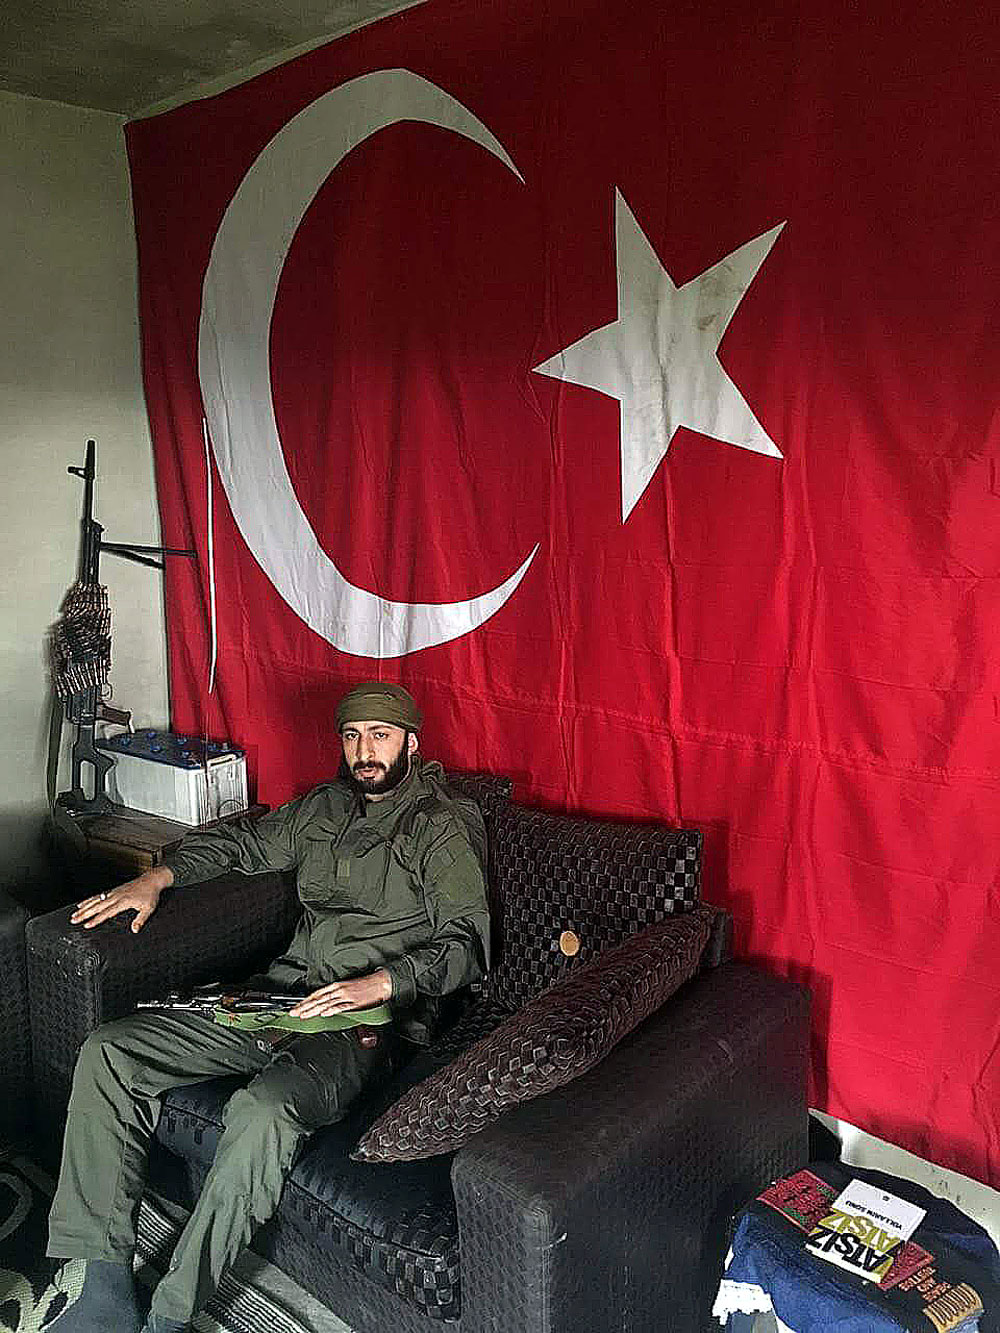 Alparslan Chelik, the Turkish citizen and militant allegedly responsible for killing Russian Su-24 pilot Oleg Peshkov in November 2015, was arrested in a cafe in the Turkish city of Izmir on March 31.